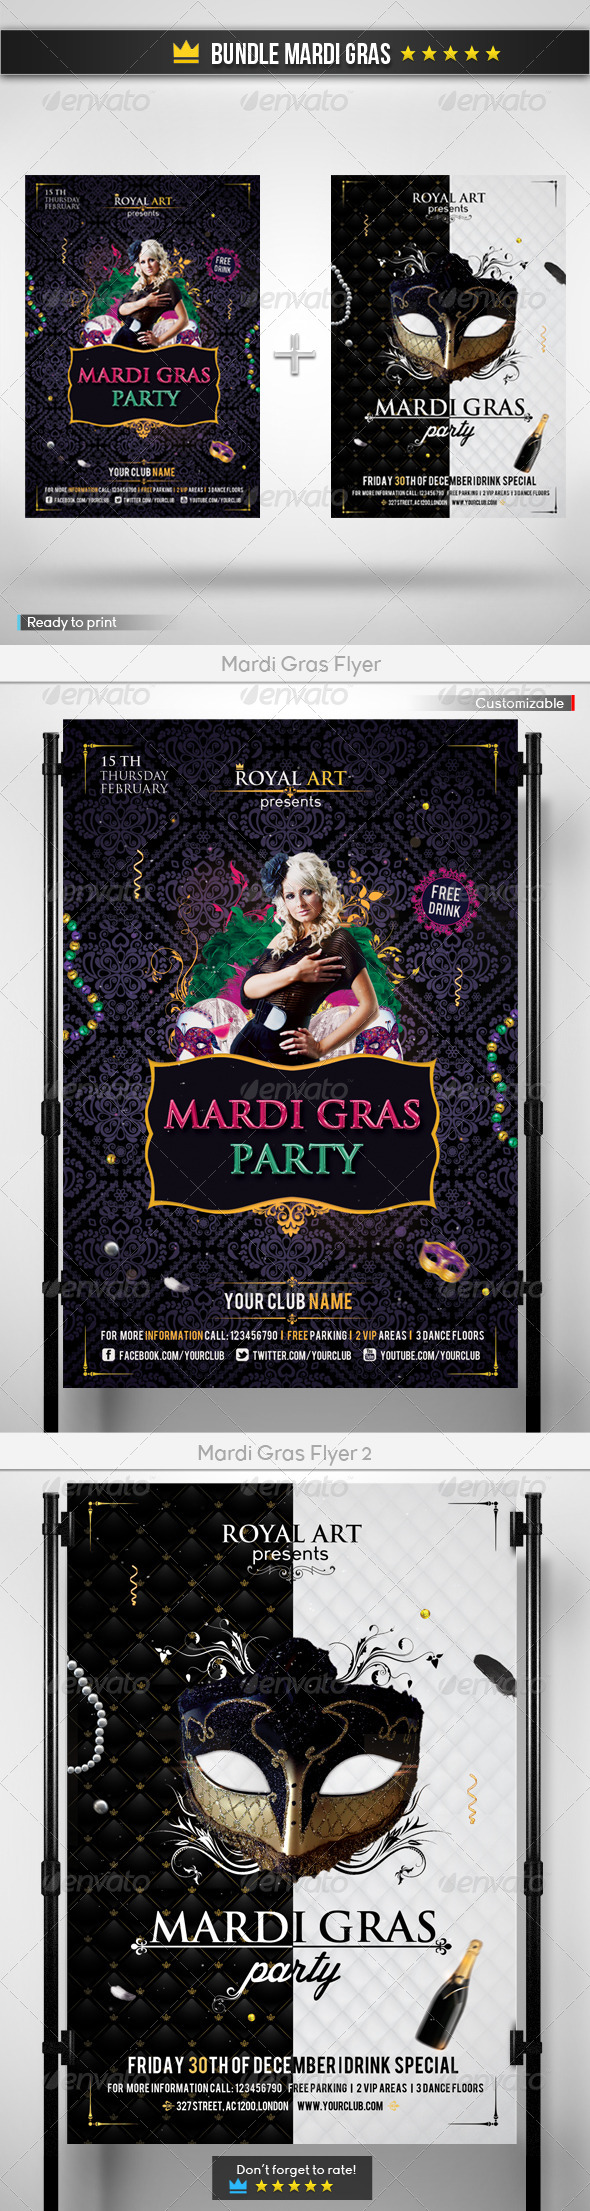 GraphicRiver Bundle Mardi Gras 6611466